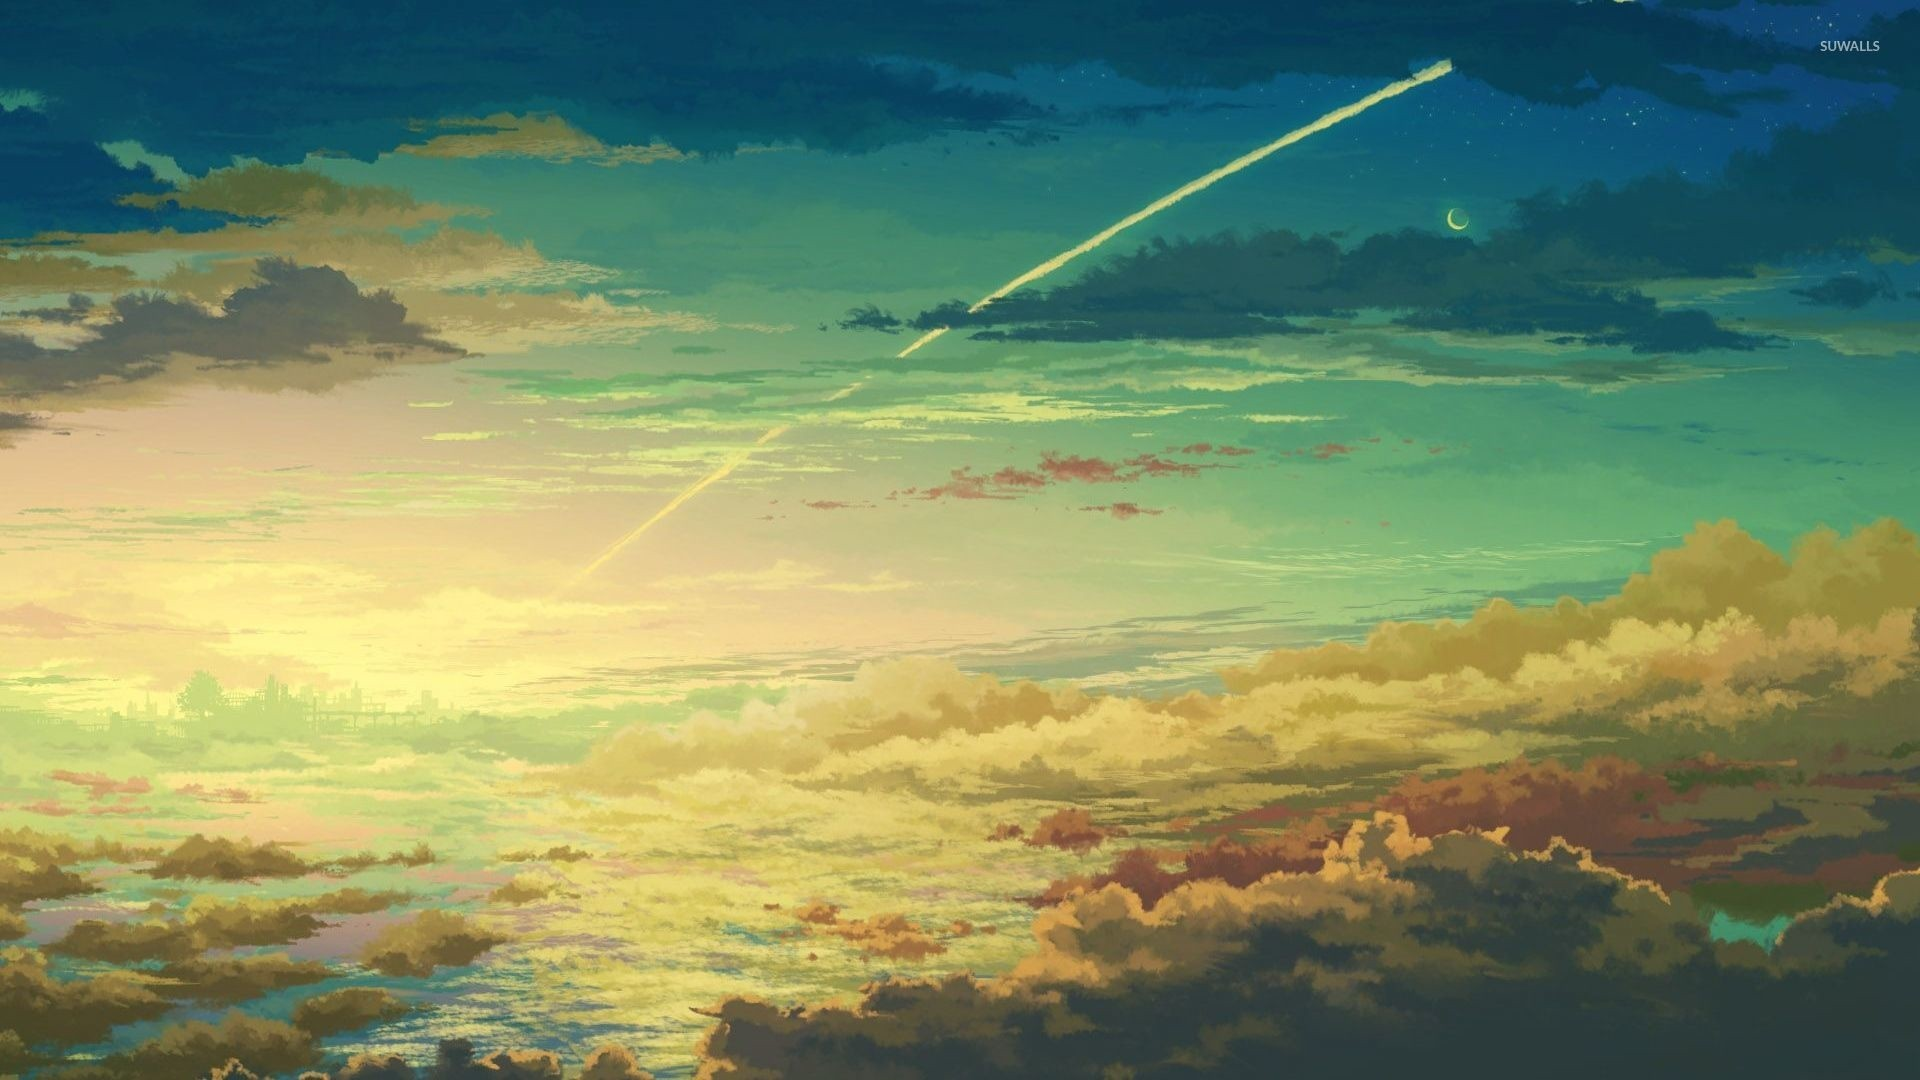 Anime Clouds Wallpaper for pc